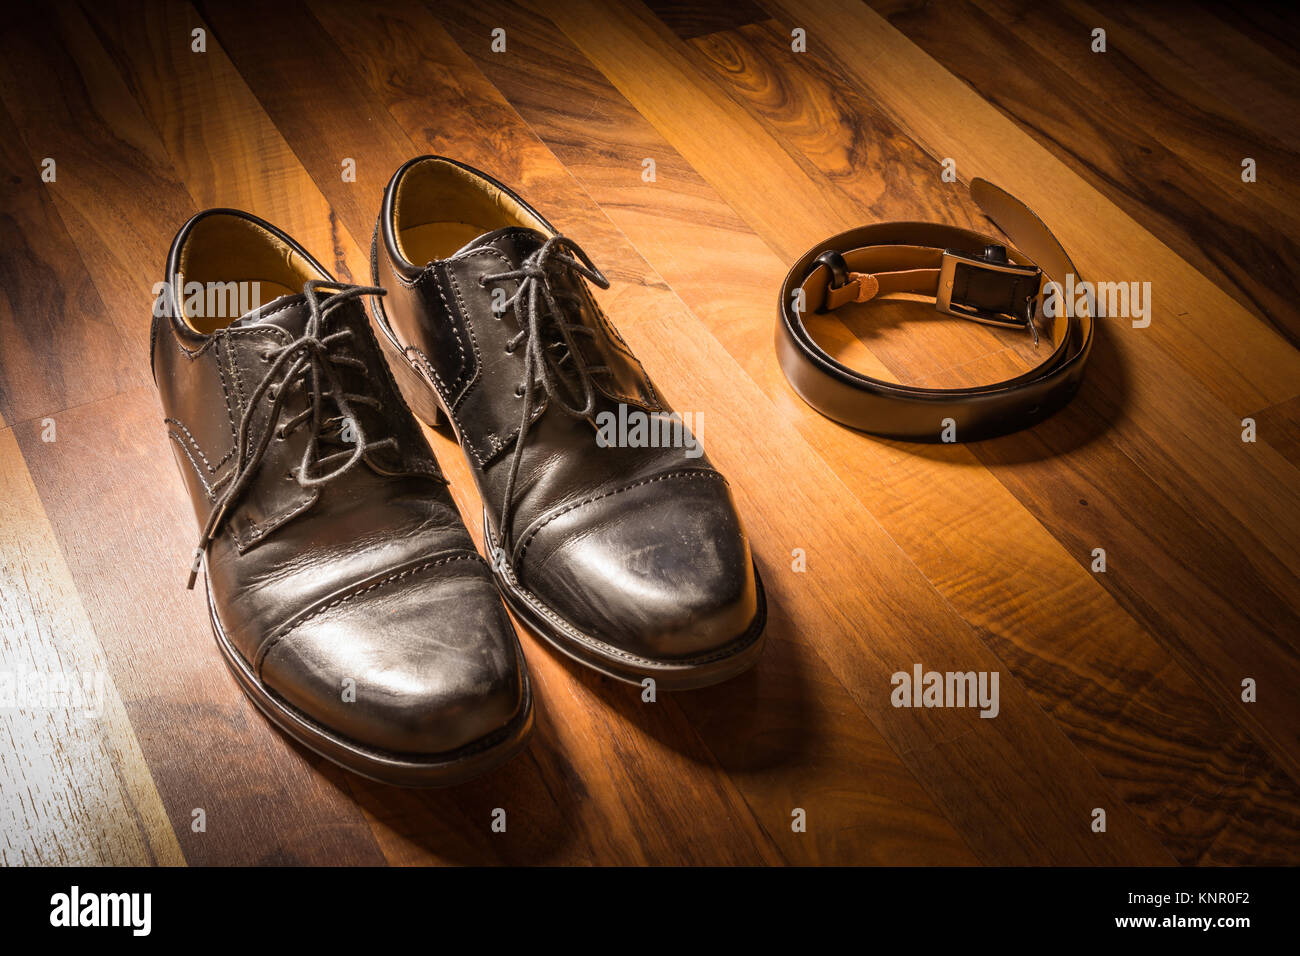 8c4db649 Stylish Black Handcrafted Dress Shoes and Leather Belt on Wooden Floor  Spotlight Sun Clothing